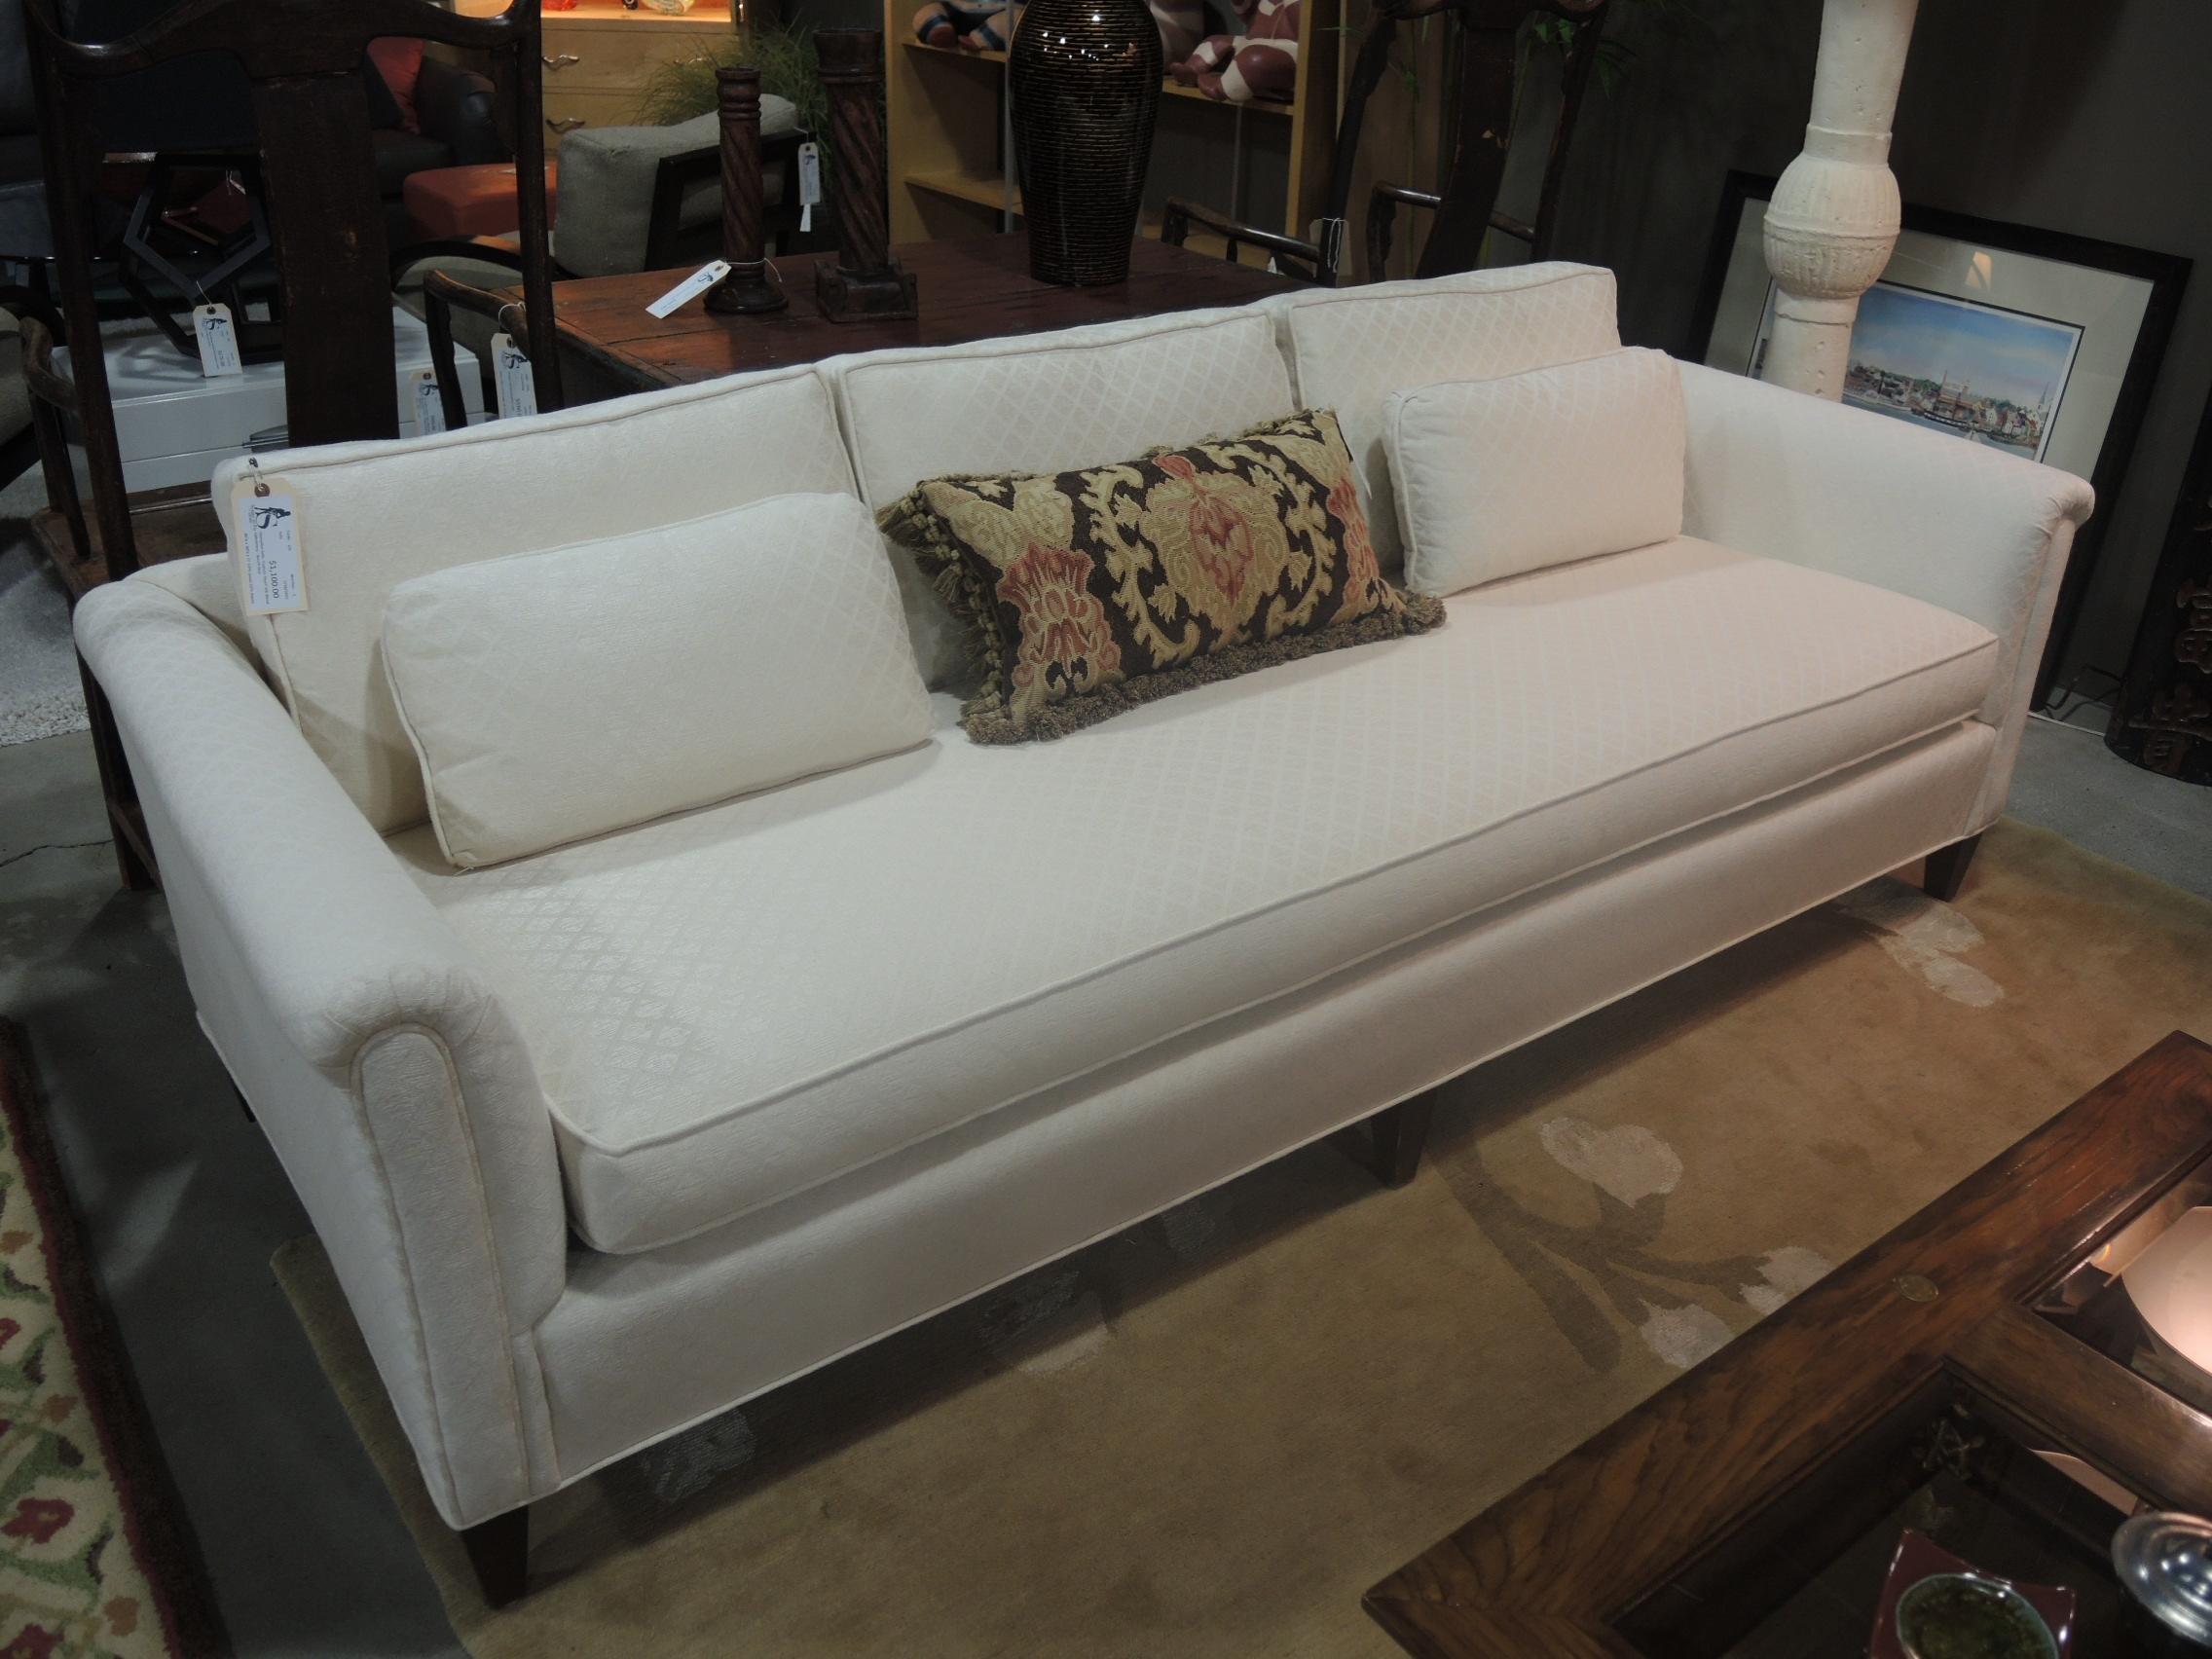 Single Bench Cushion Sofa - Incline Bench Press throughout Deep Cushion Sofas (Image 8 of 10)